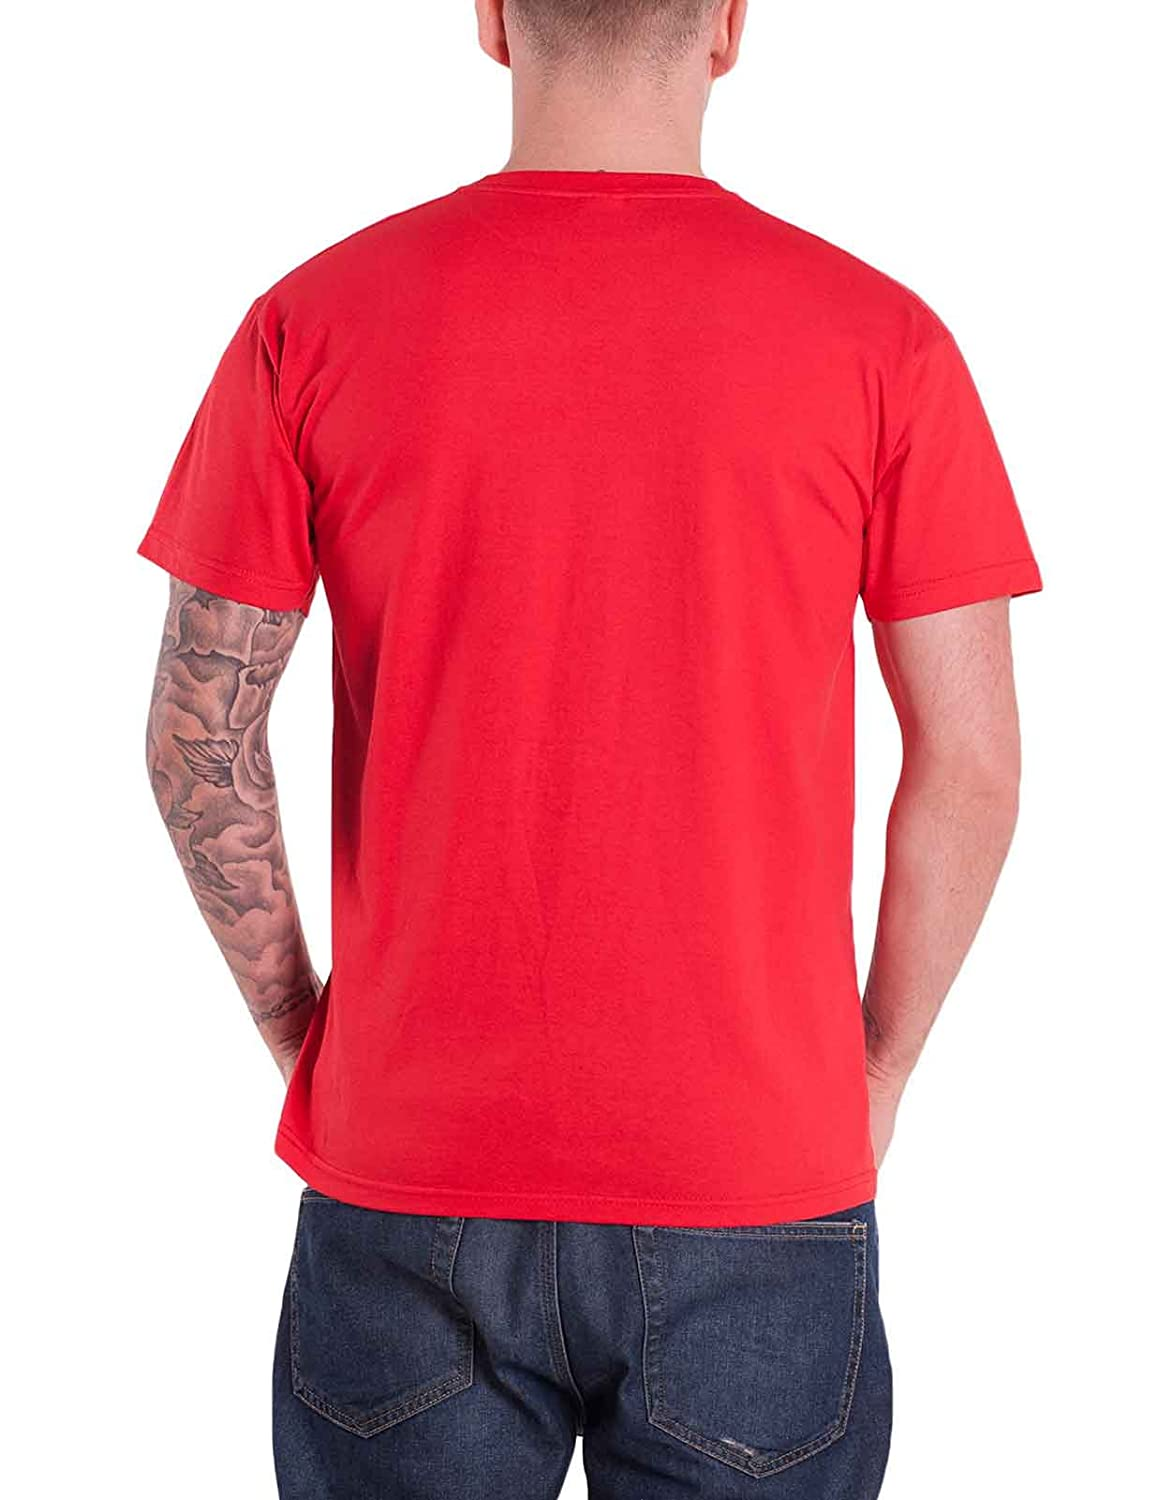 422fa8d73 Amazon.com: Sonic youth T Shirt Sonic Nurse Band Logo Official Mens Red:  Clothing